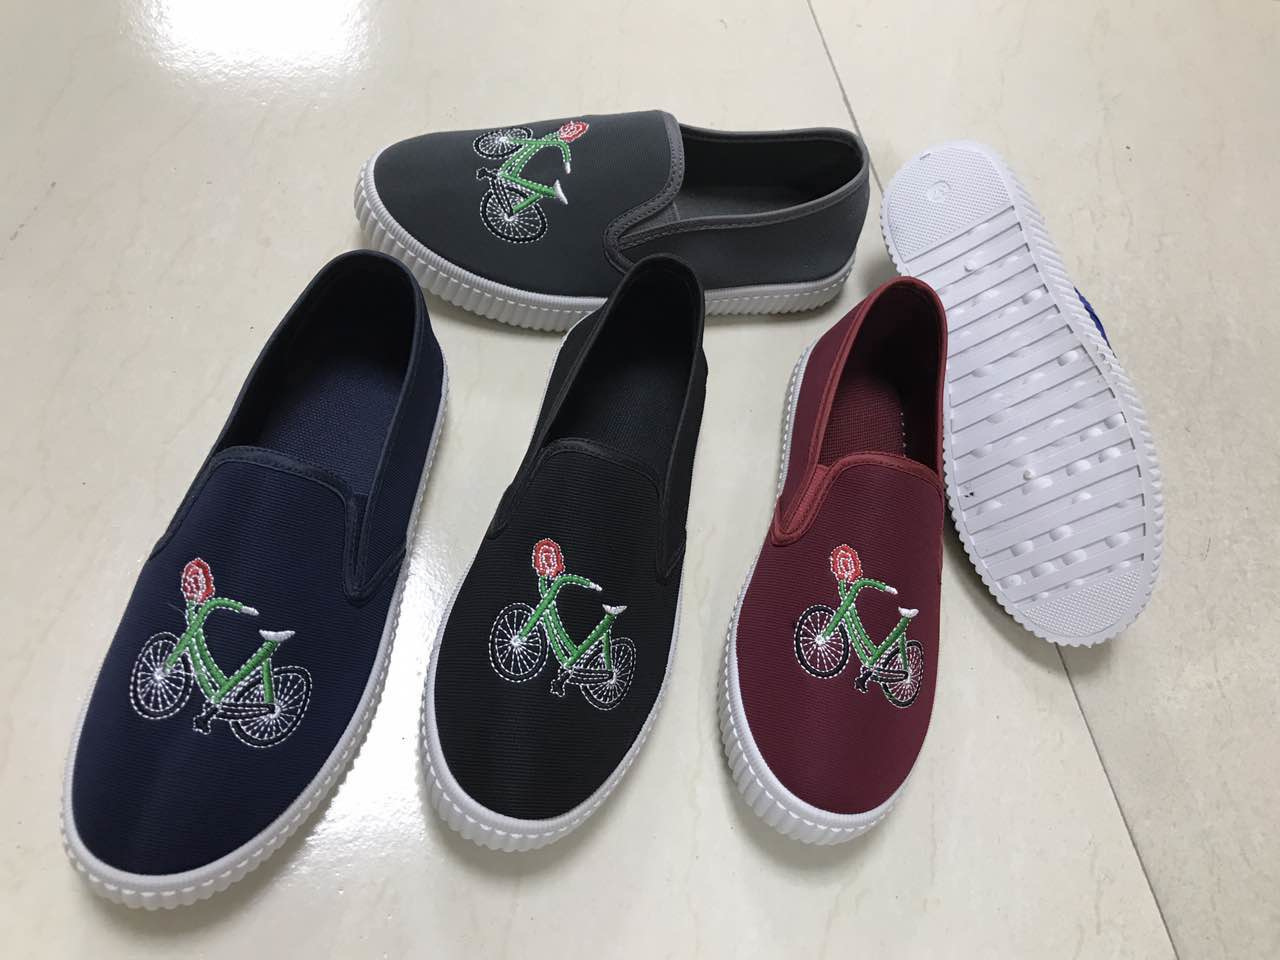 2017 Women′s Classic Canvas Shoes with Flat Embroidery Shoes